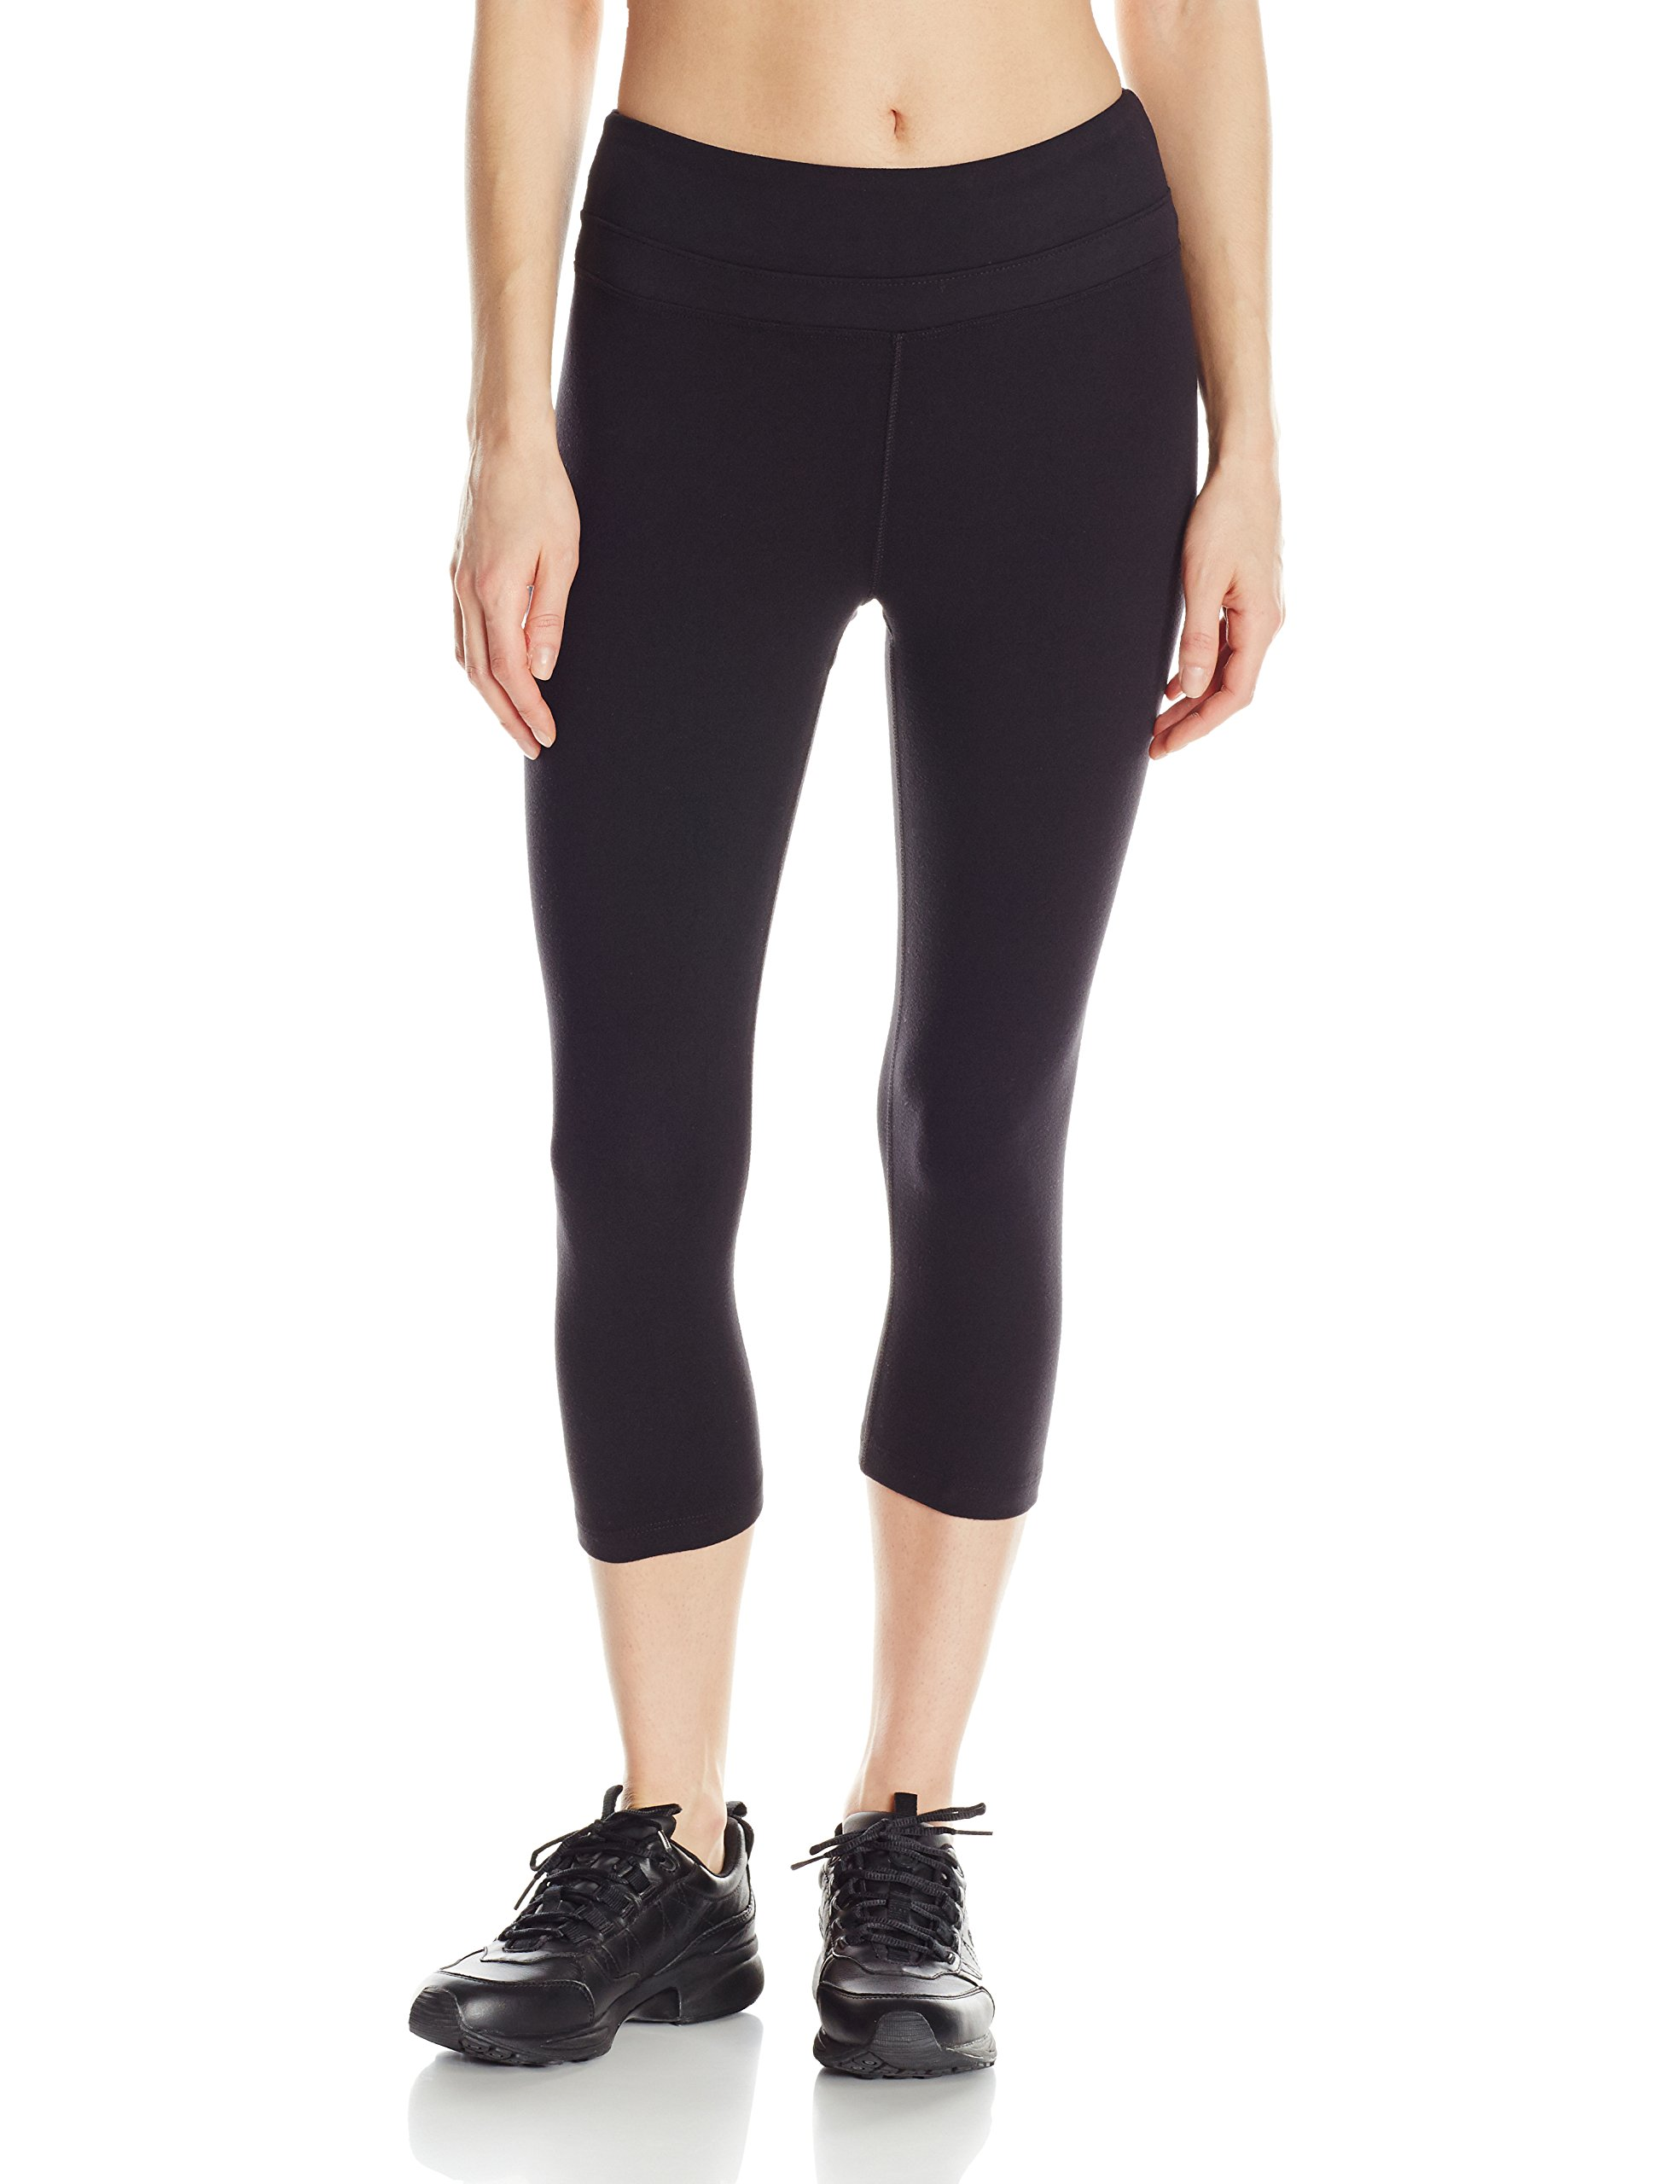 Marika Womens Ava Performance Slim Capri Legging, Black, Medium